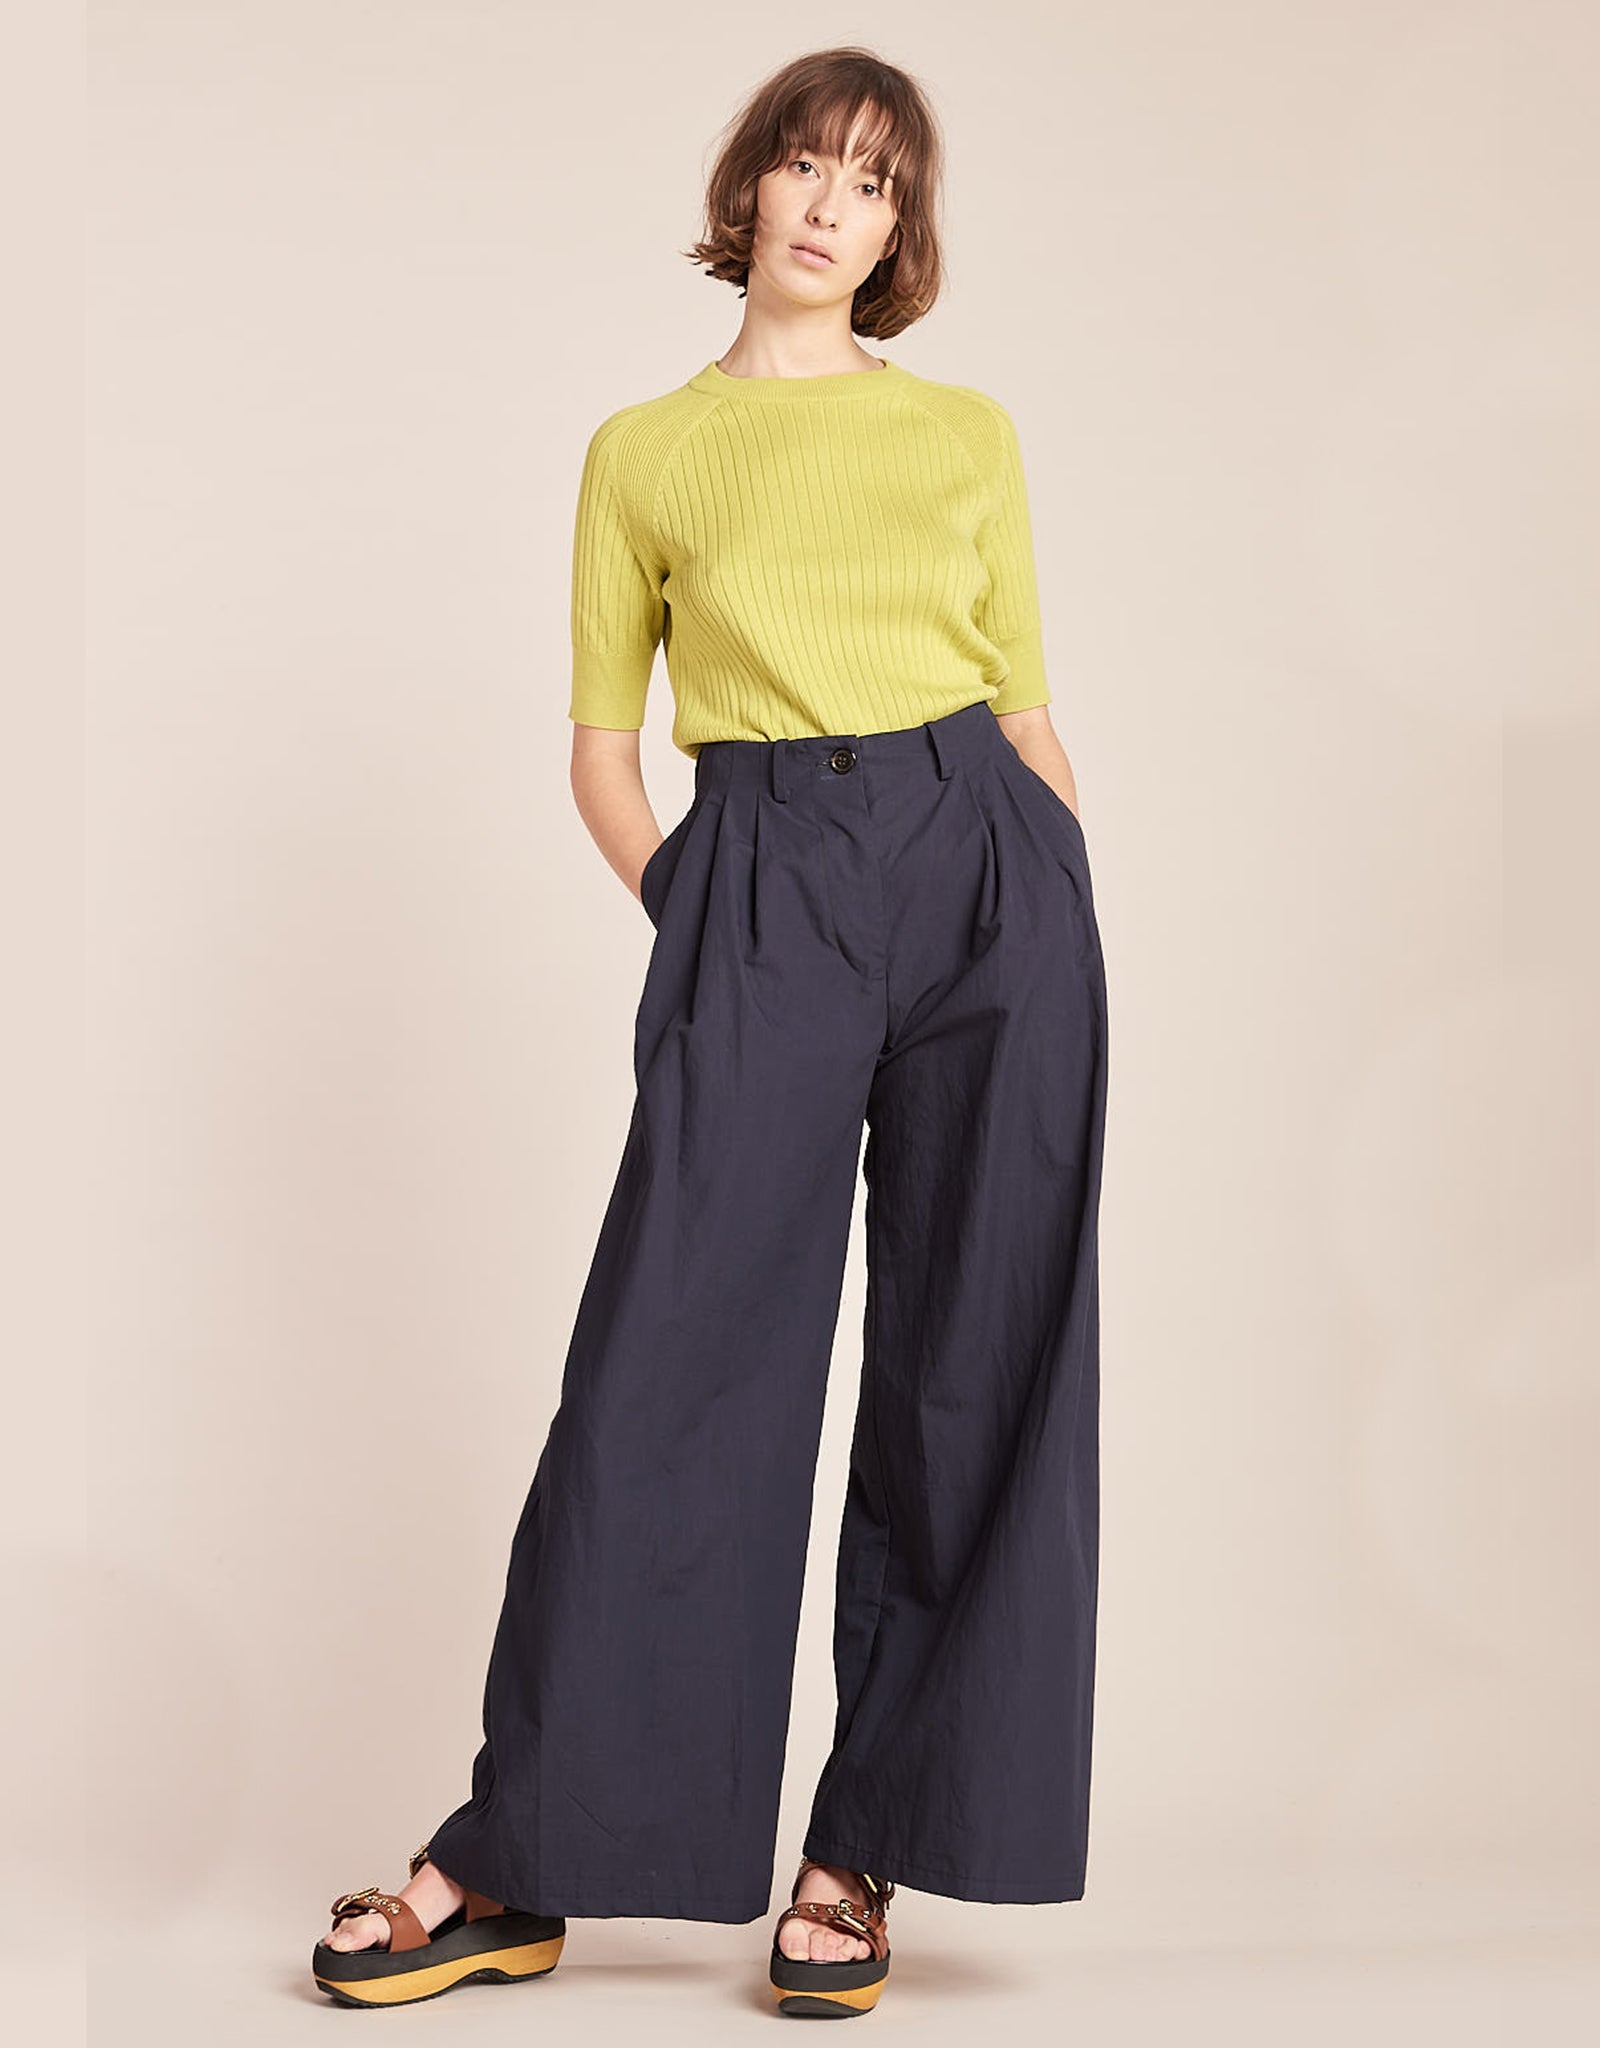 Model wears Kloke Illume Wide Pant in Ink, pocket detail. Available at FAWN Toronto.